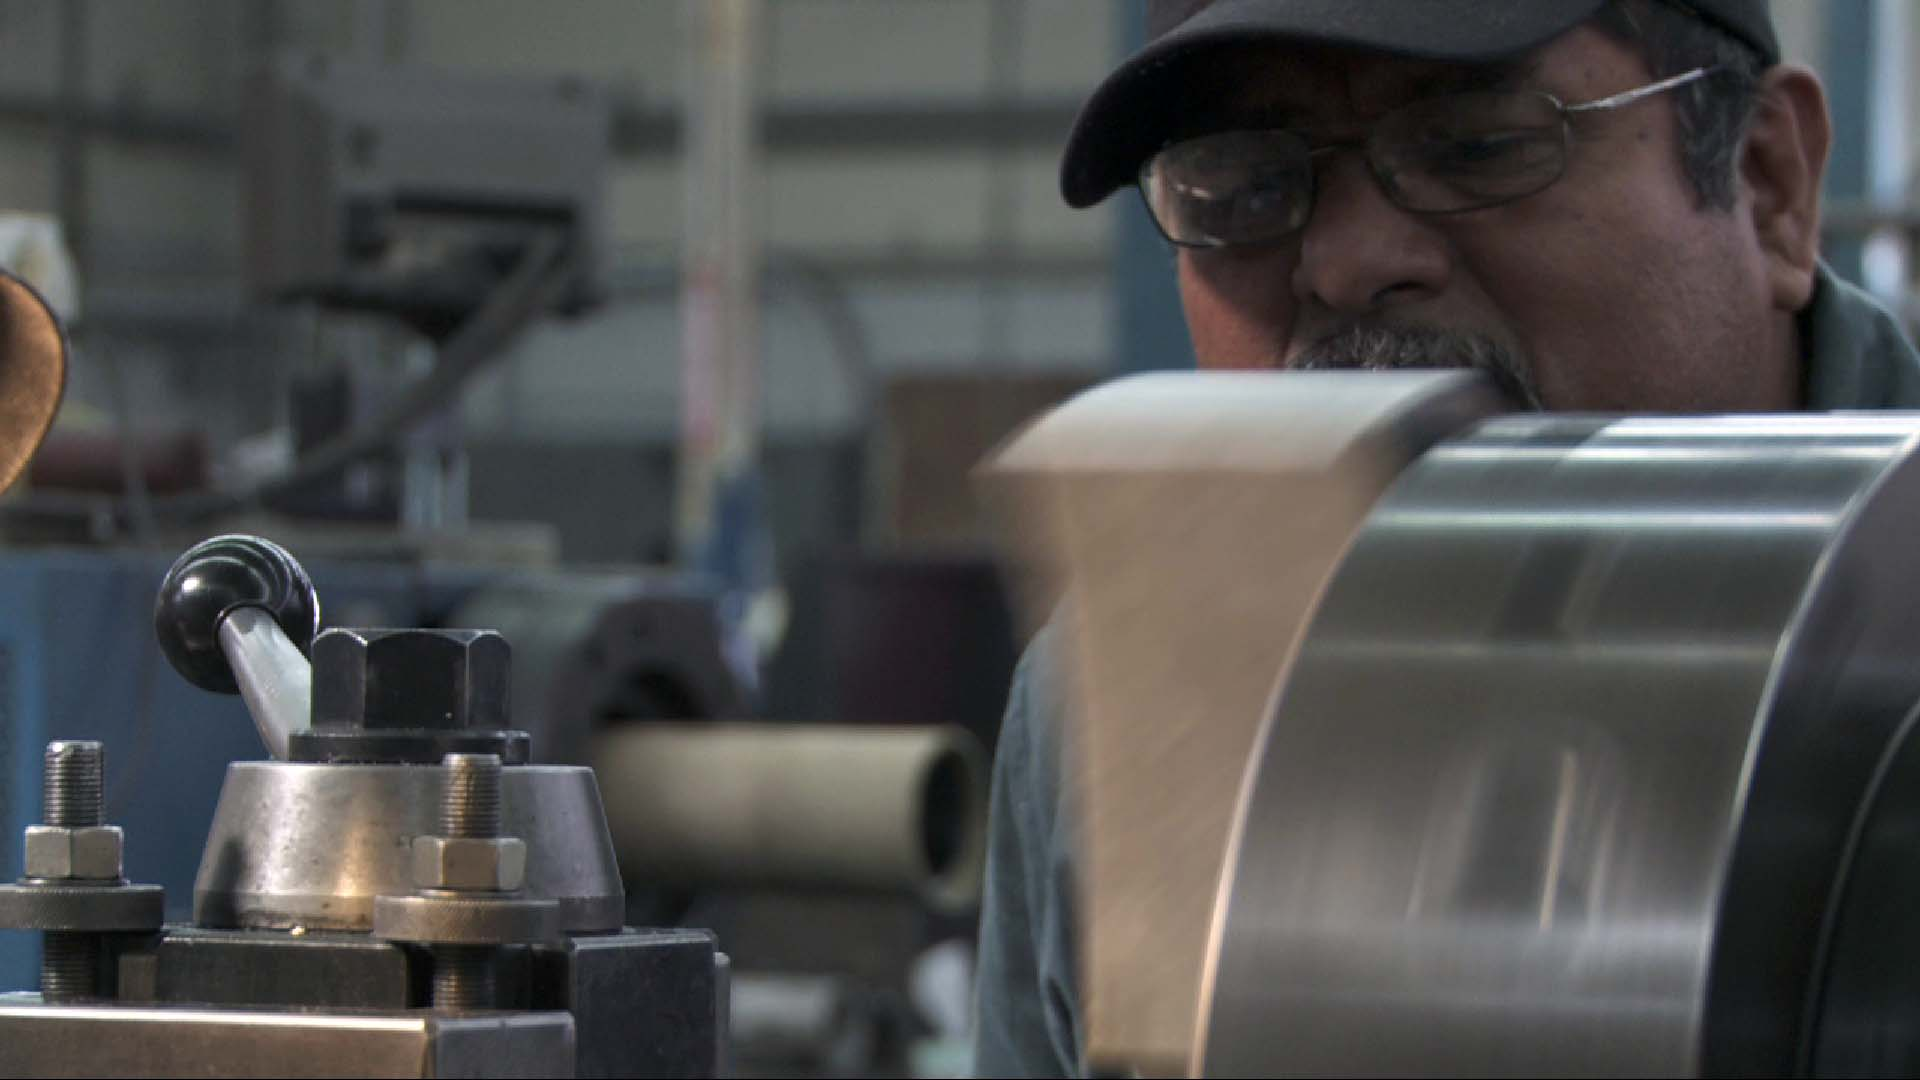 Working at the lathe